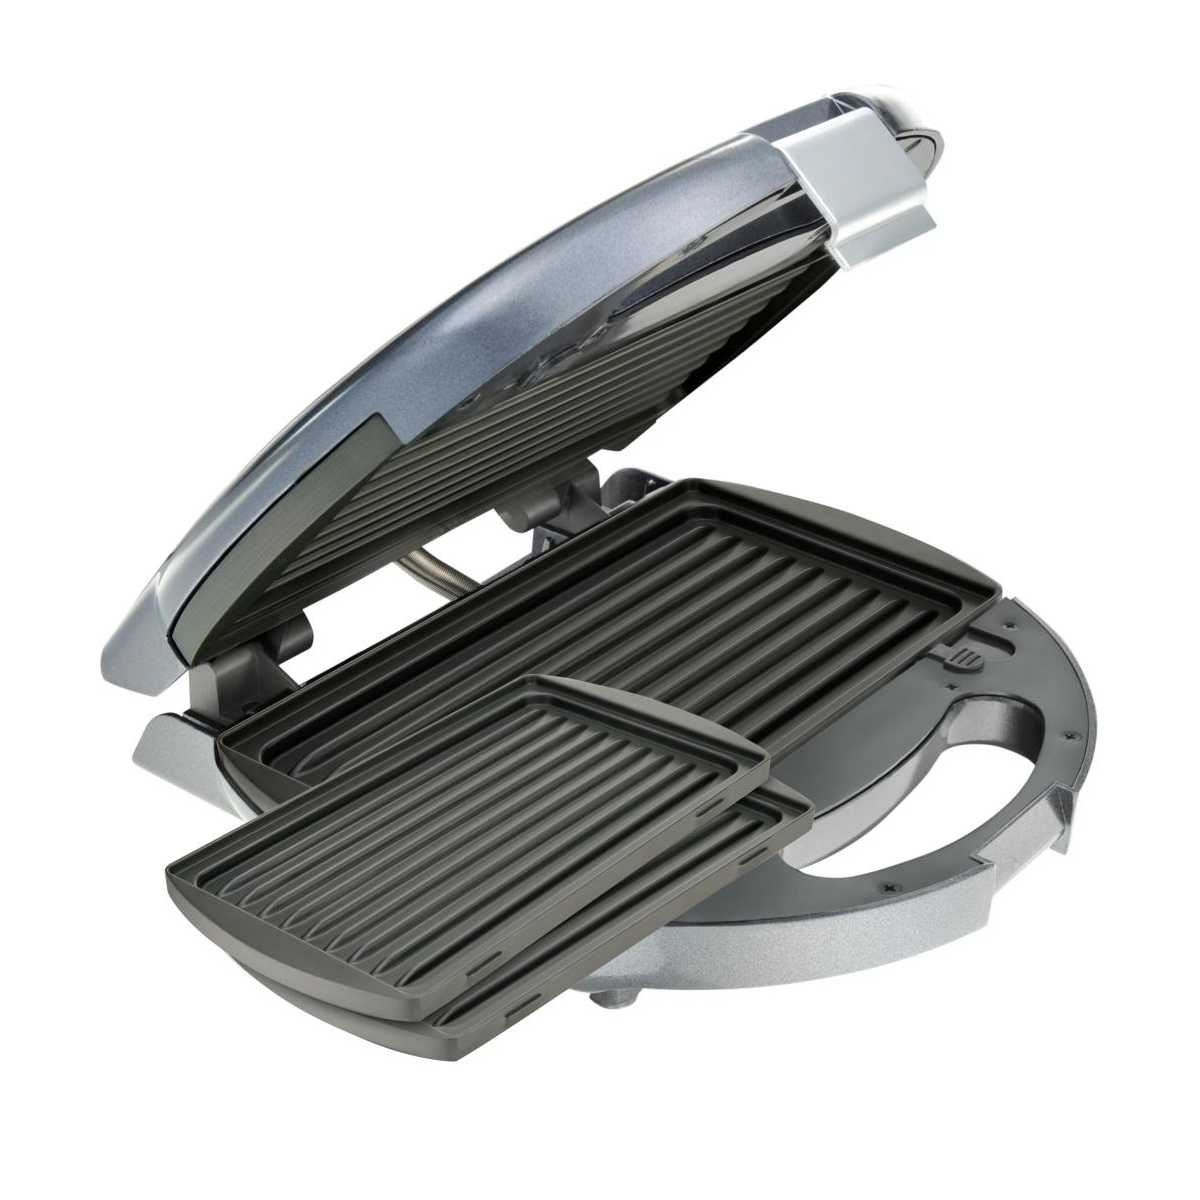 Picture of Oster Sandwich Maker 3888